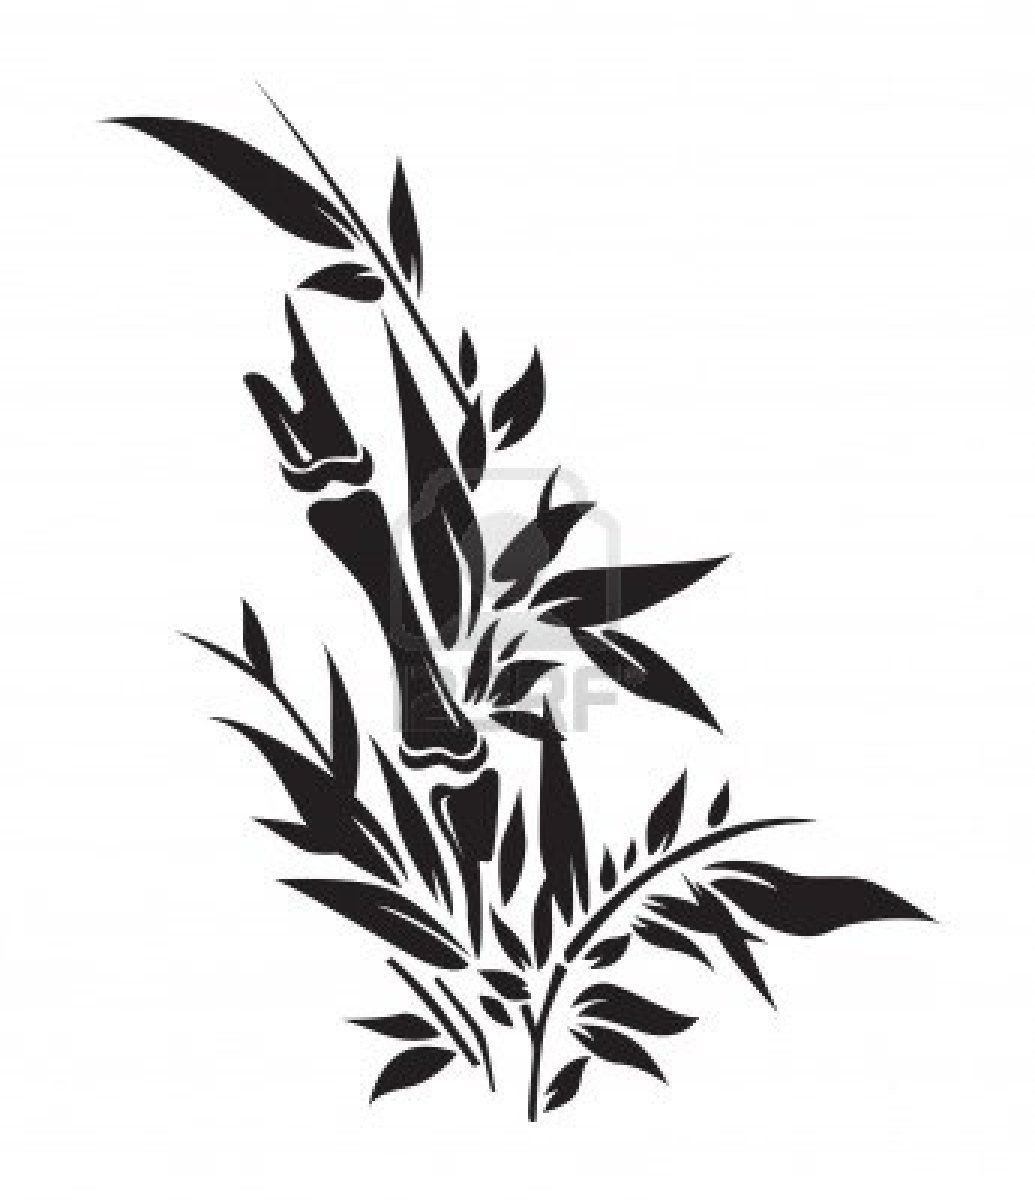 1035x1200 Bamboo Tree Silhouettes Illustration Royalty Free Cliparts